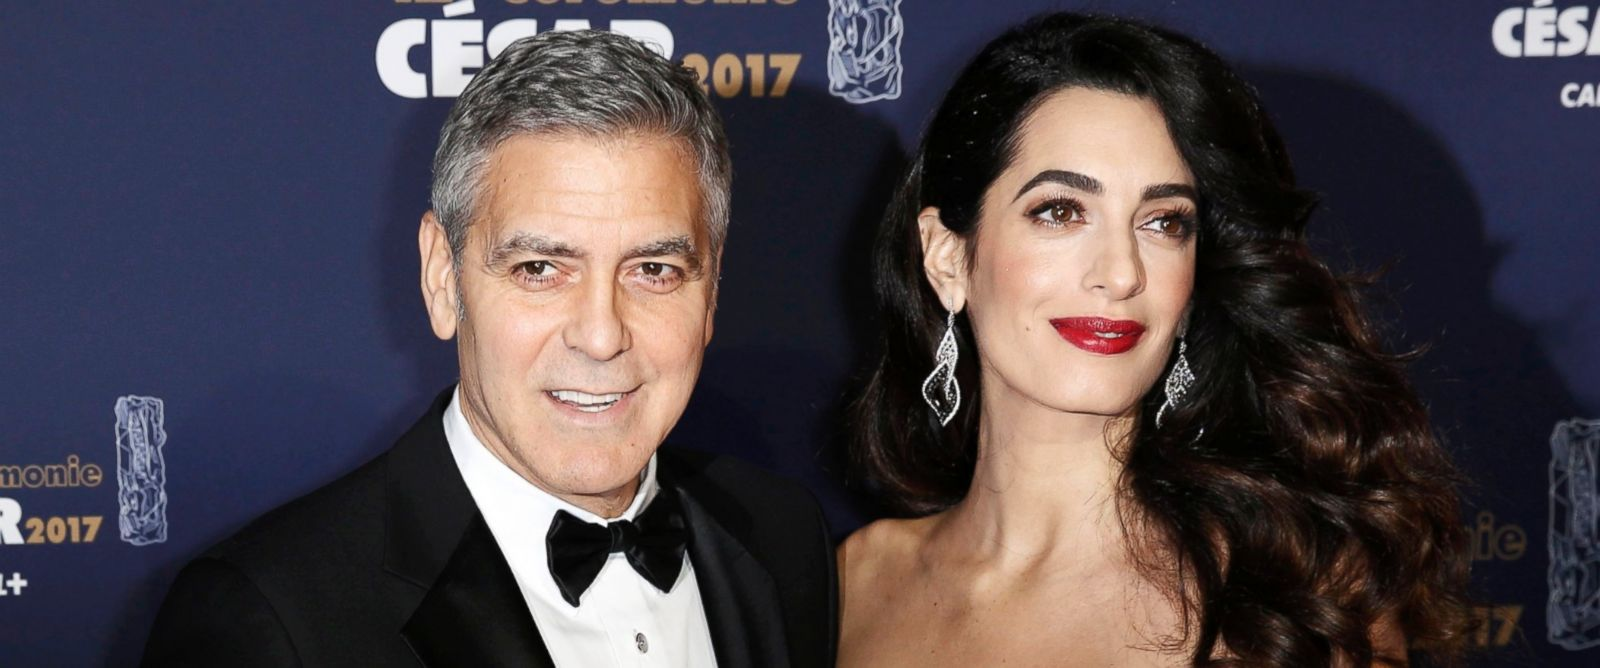 George Clooney and Amal Clooney welcome twins